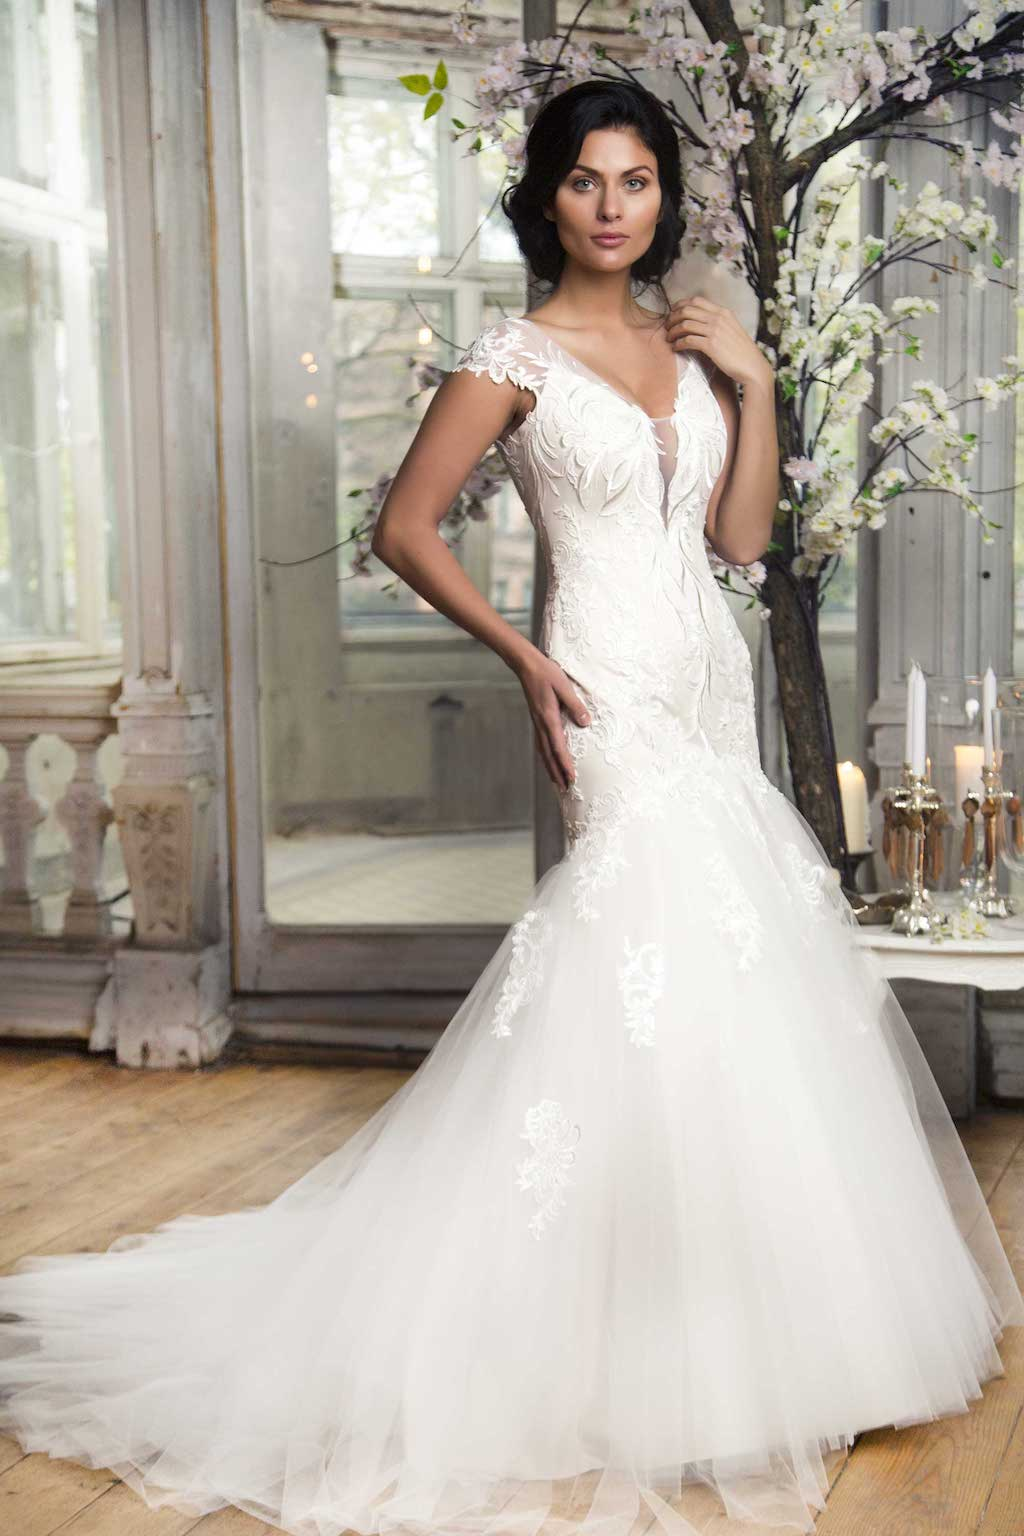 Wedding Dresses in London Made to Allure & Stand Out